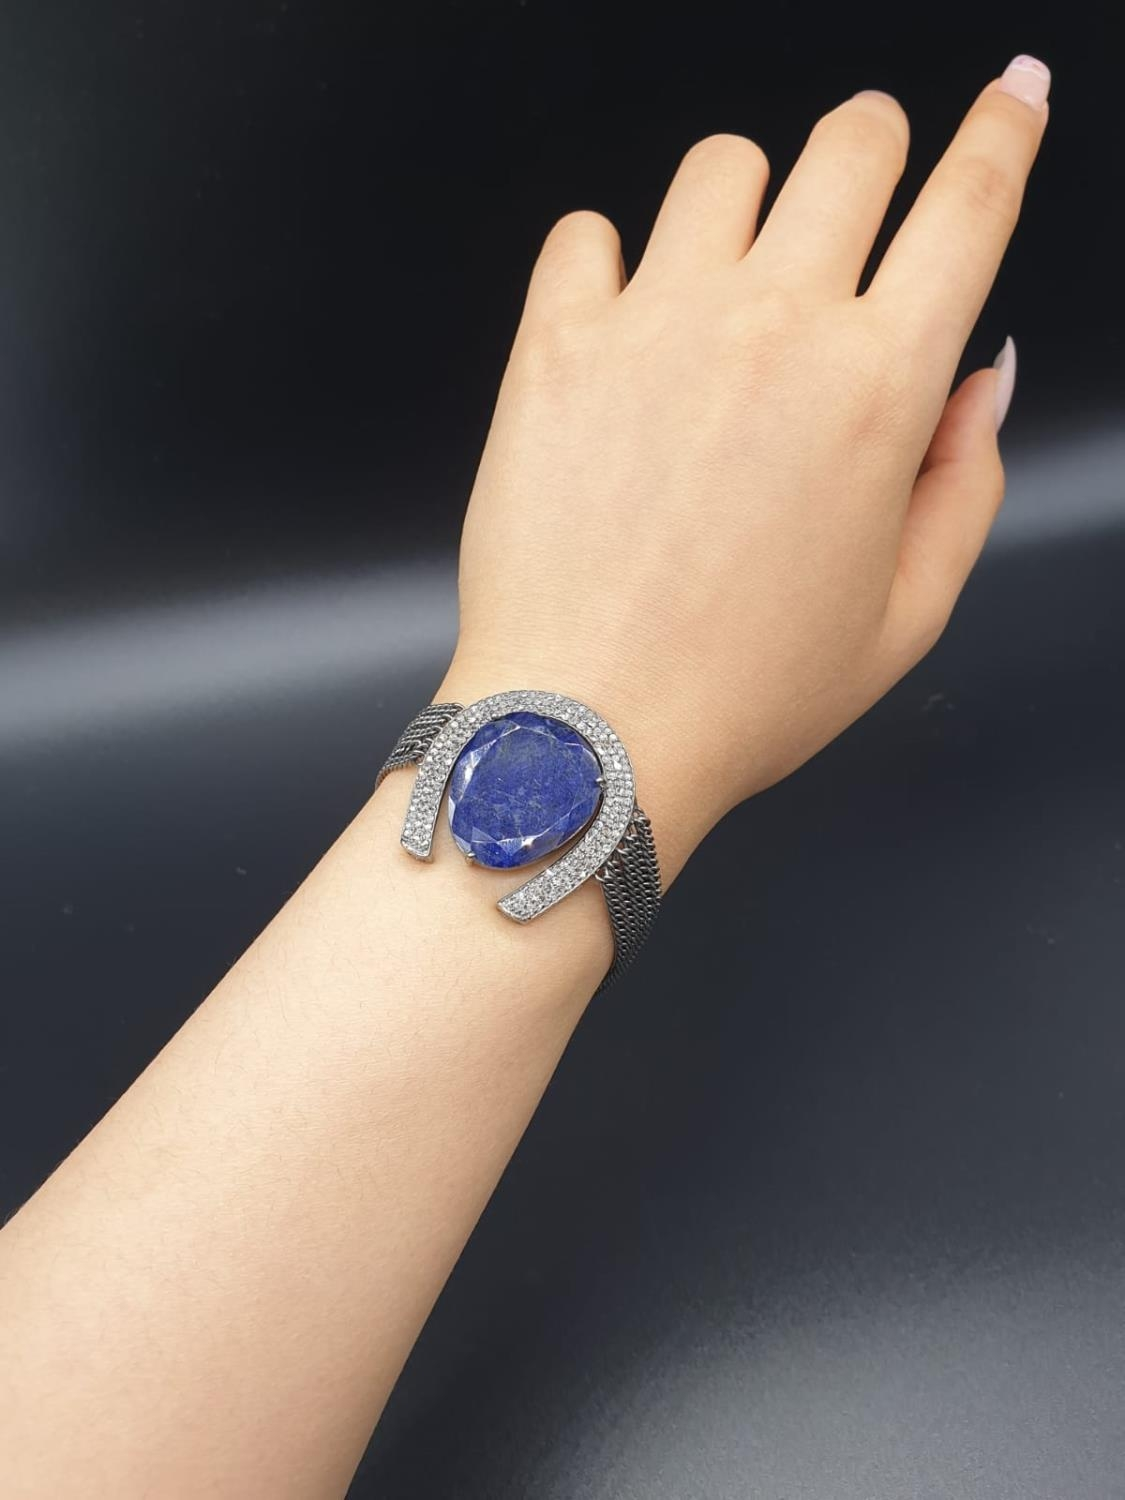 32.10 Cts Blue Sapphire inset a Horse shoe shaped bracelet. With 1.70 Cts Rose cut diamonds. - Image 4 of 5